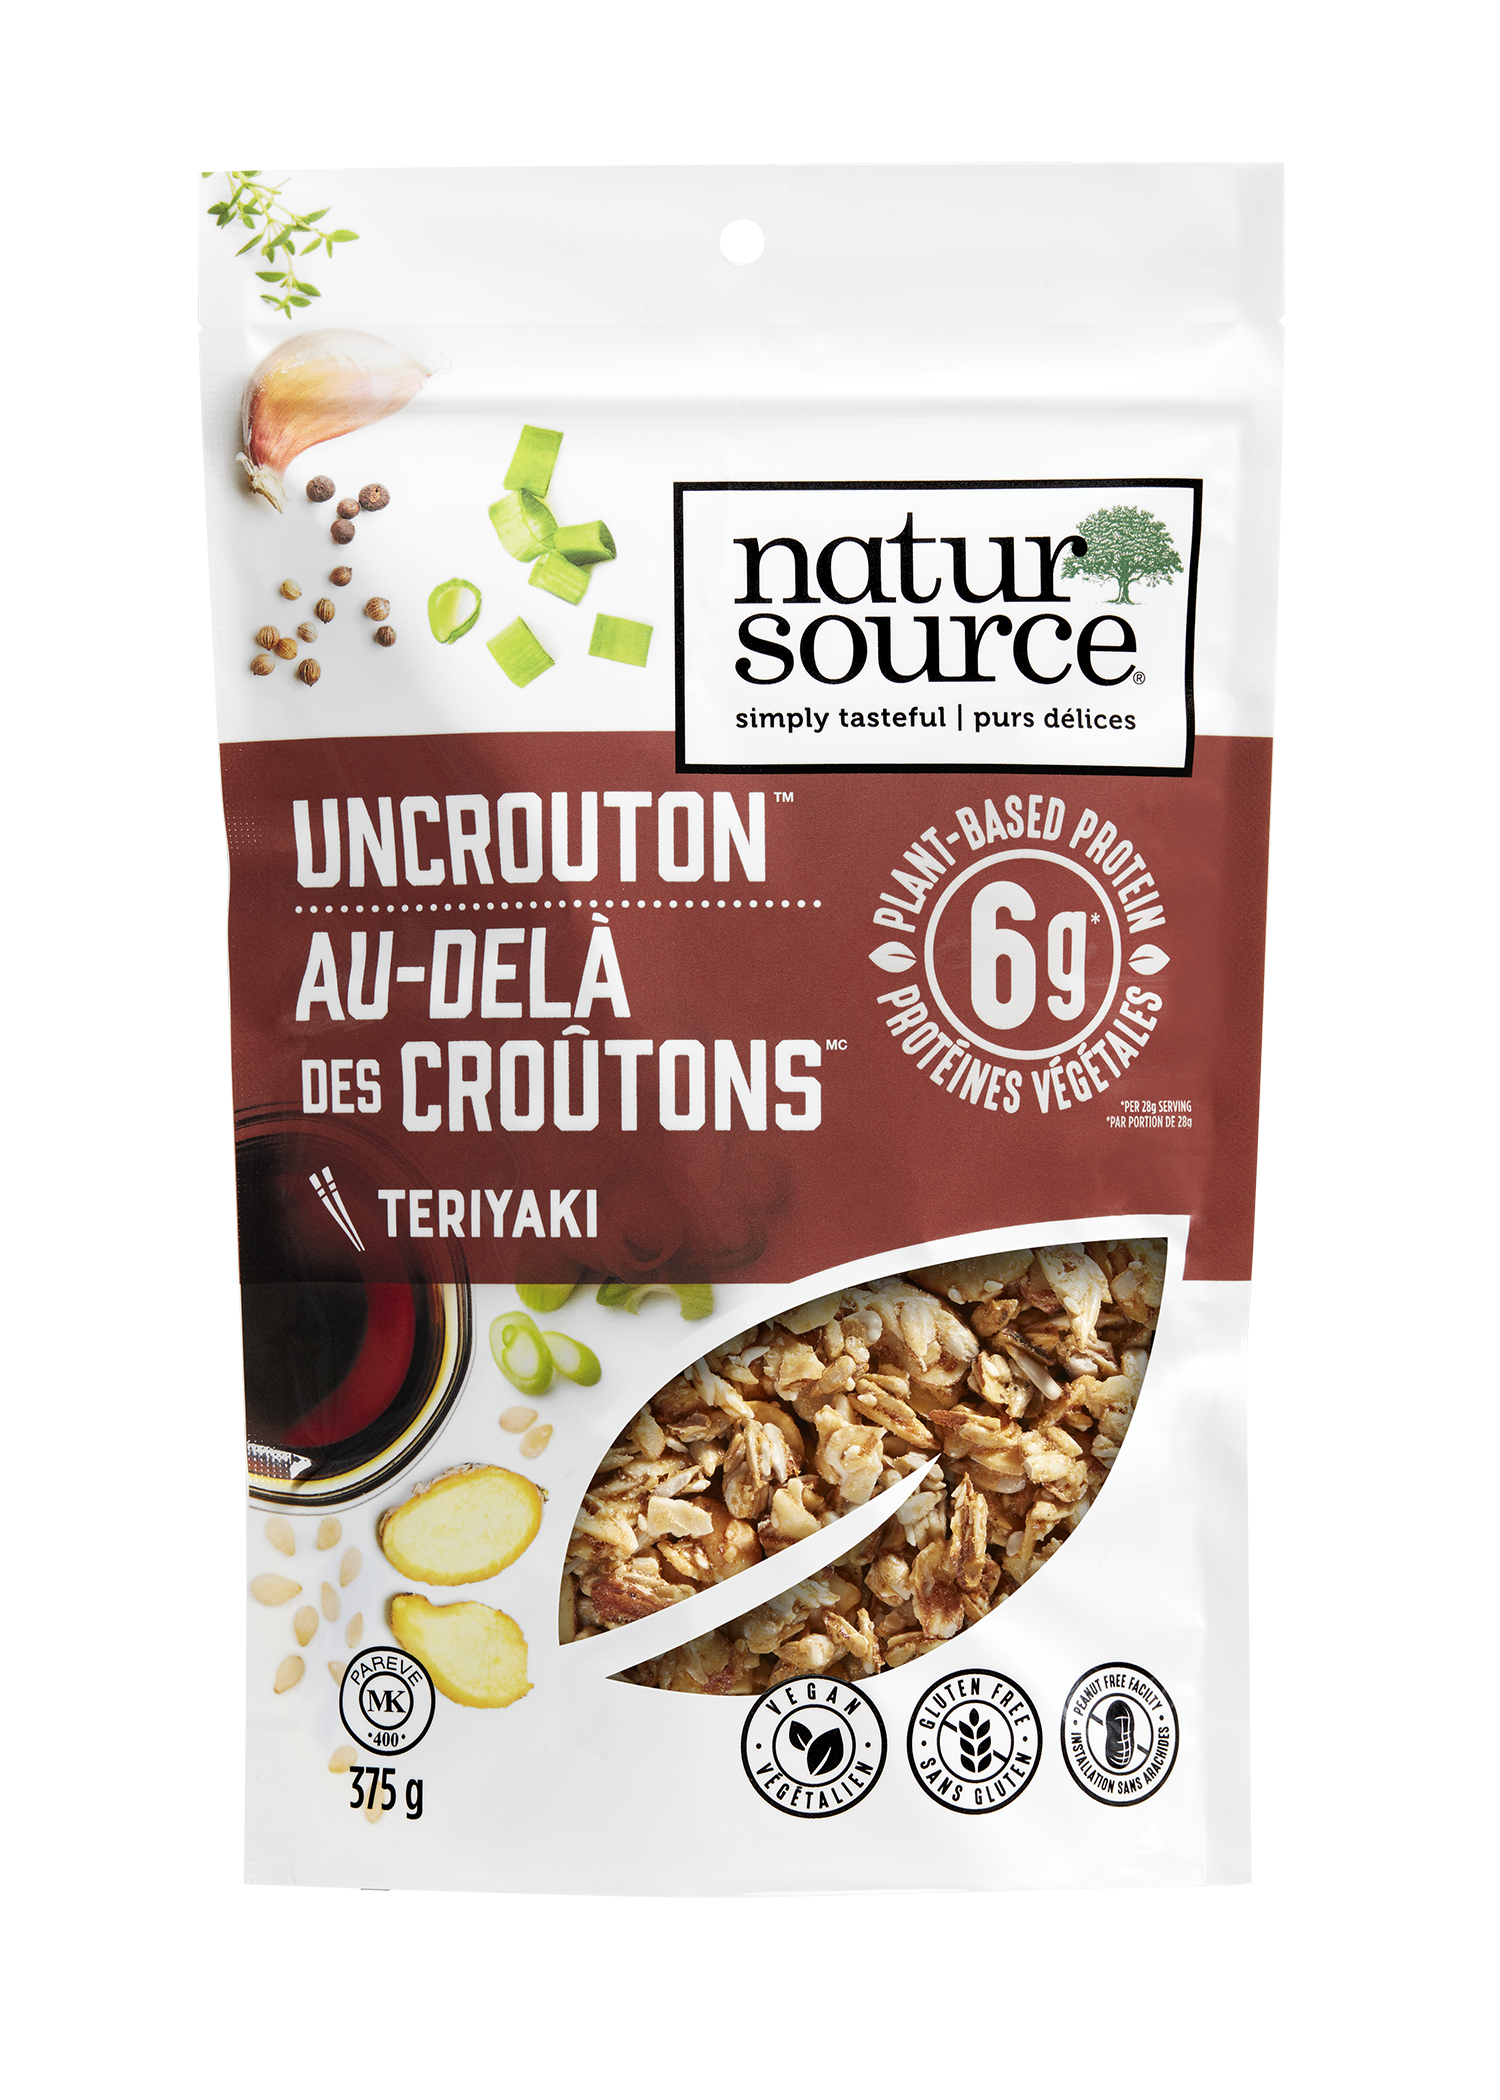 natursource vegan-friendly Teriyaki Uncrouton™ with plant-based protein